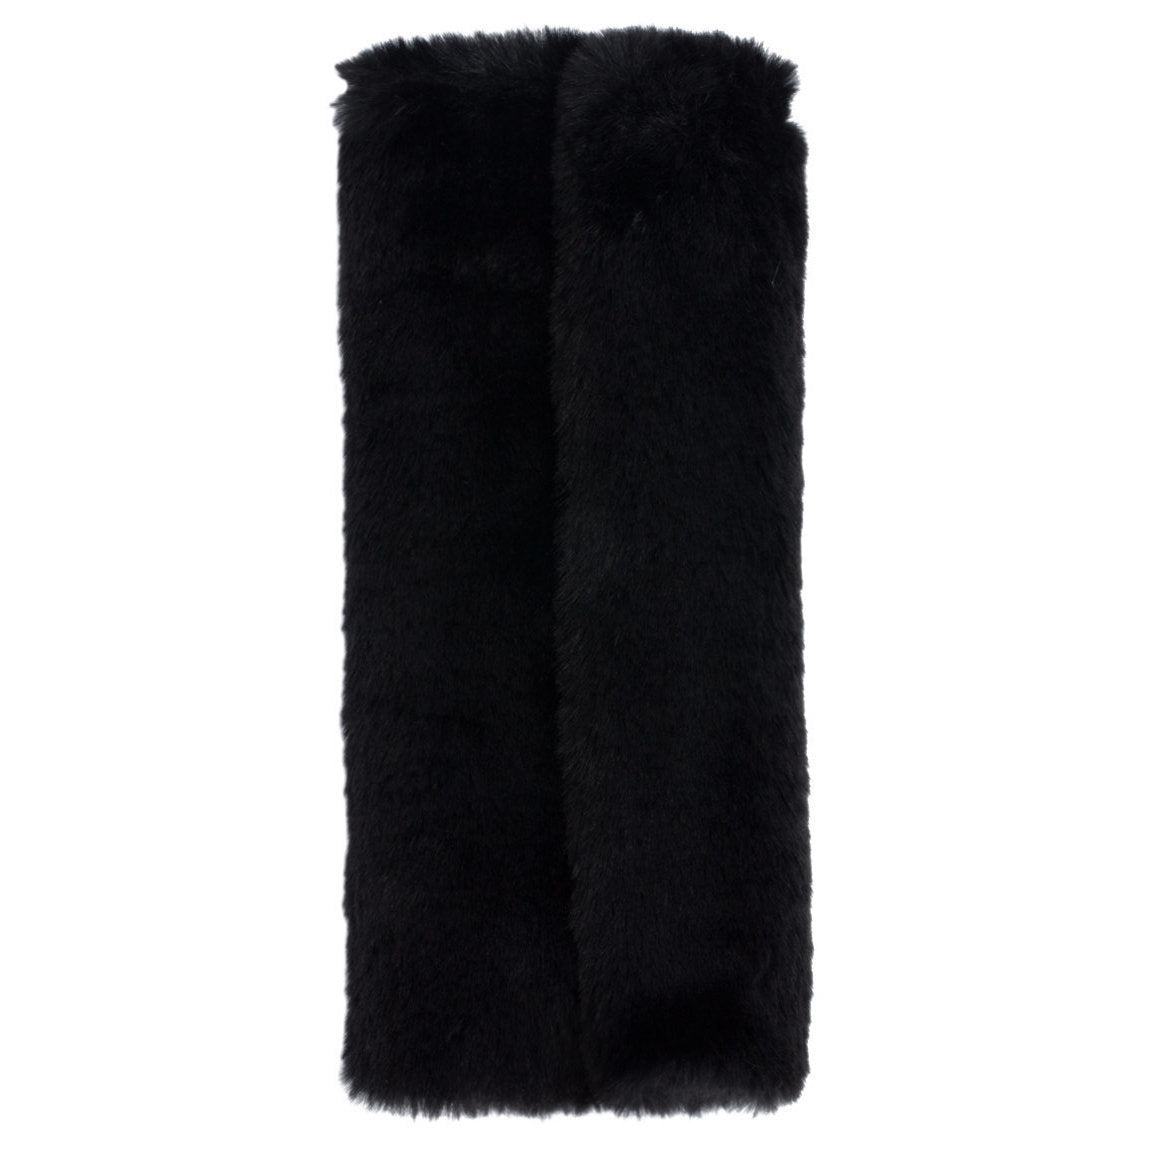 Faux Fur Brush Roll